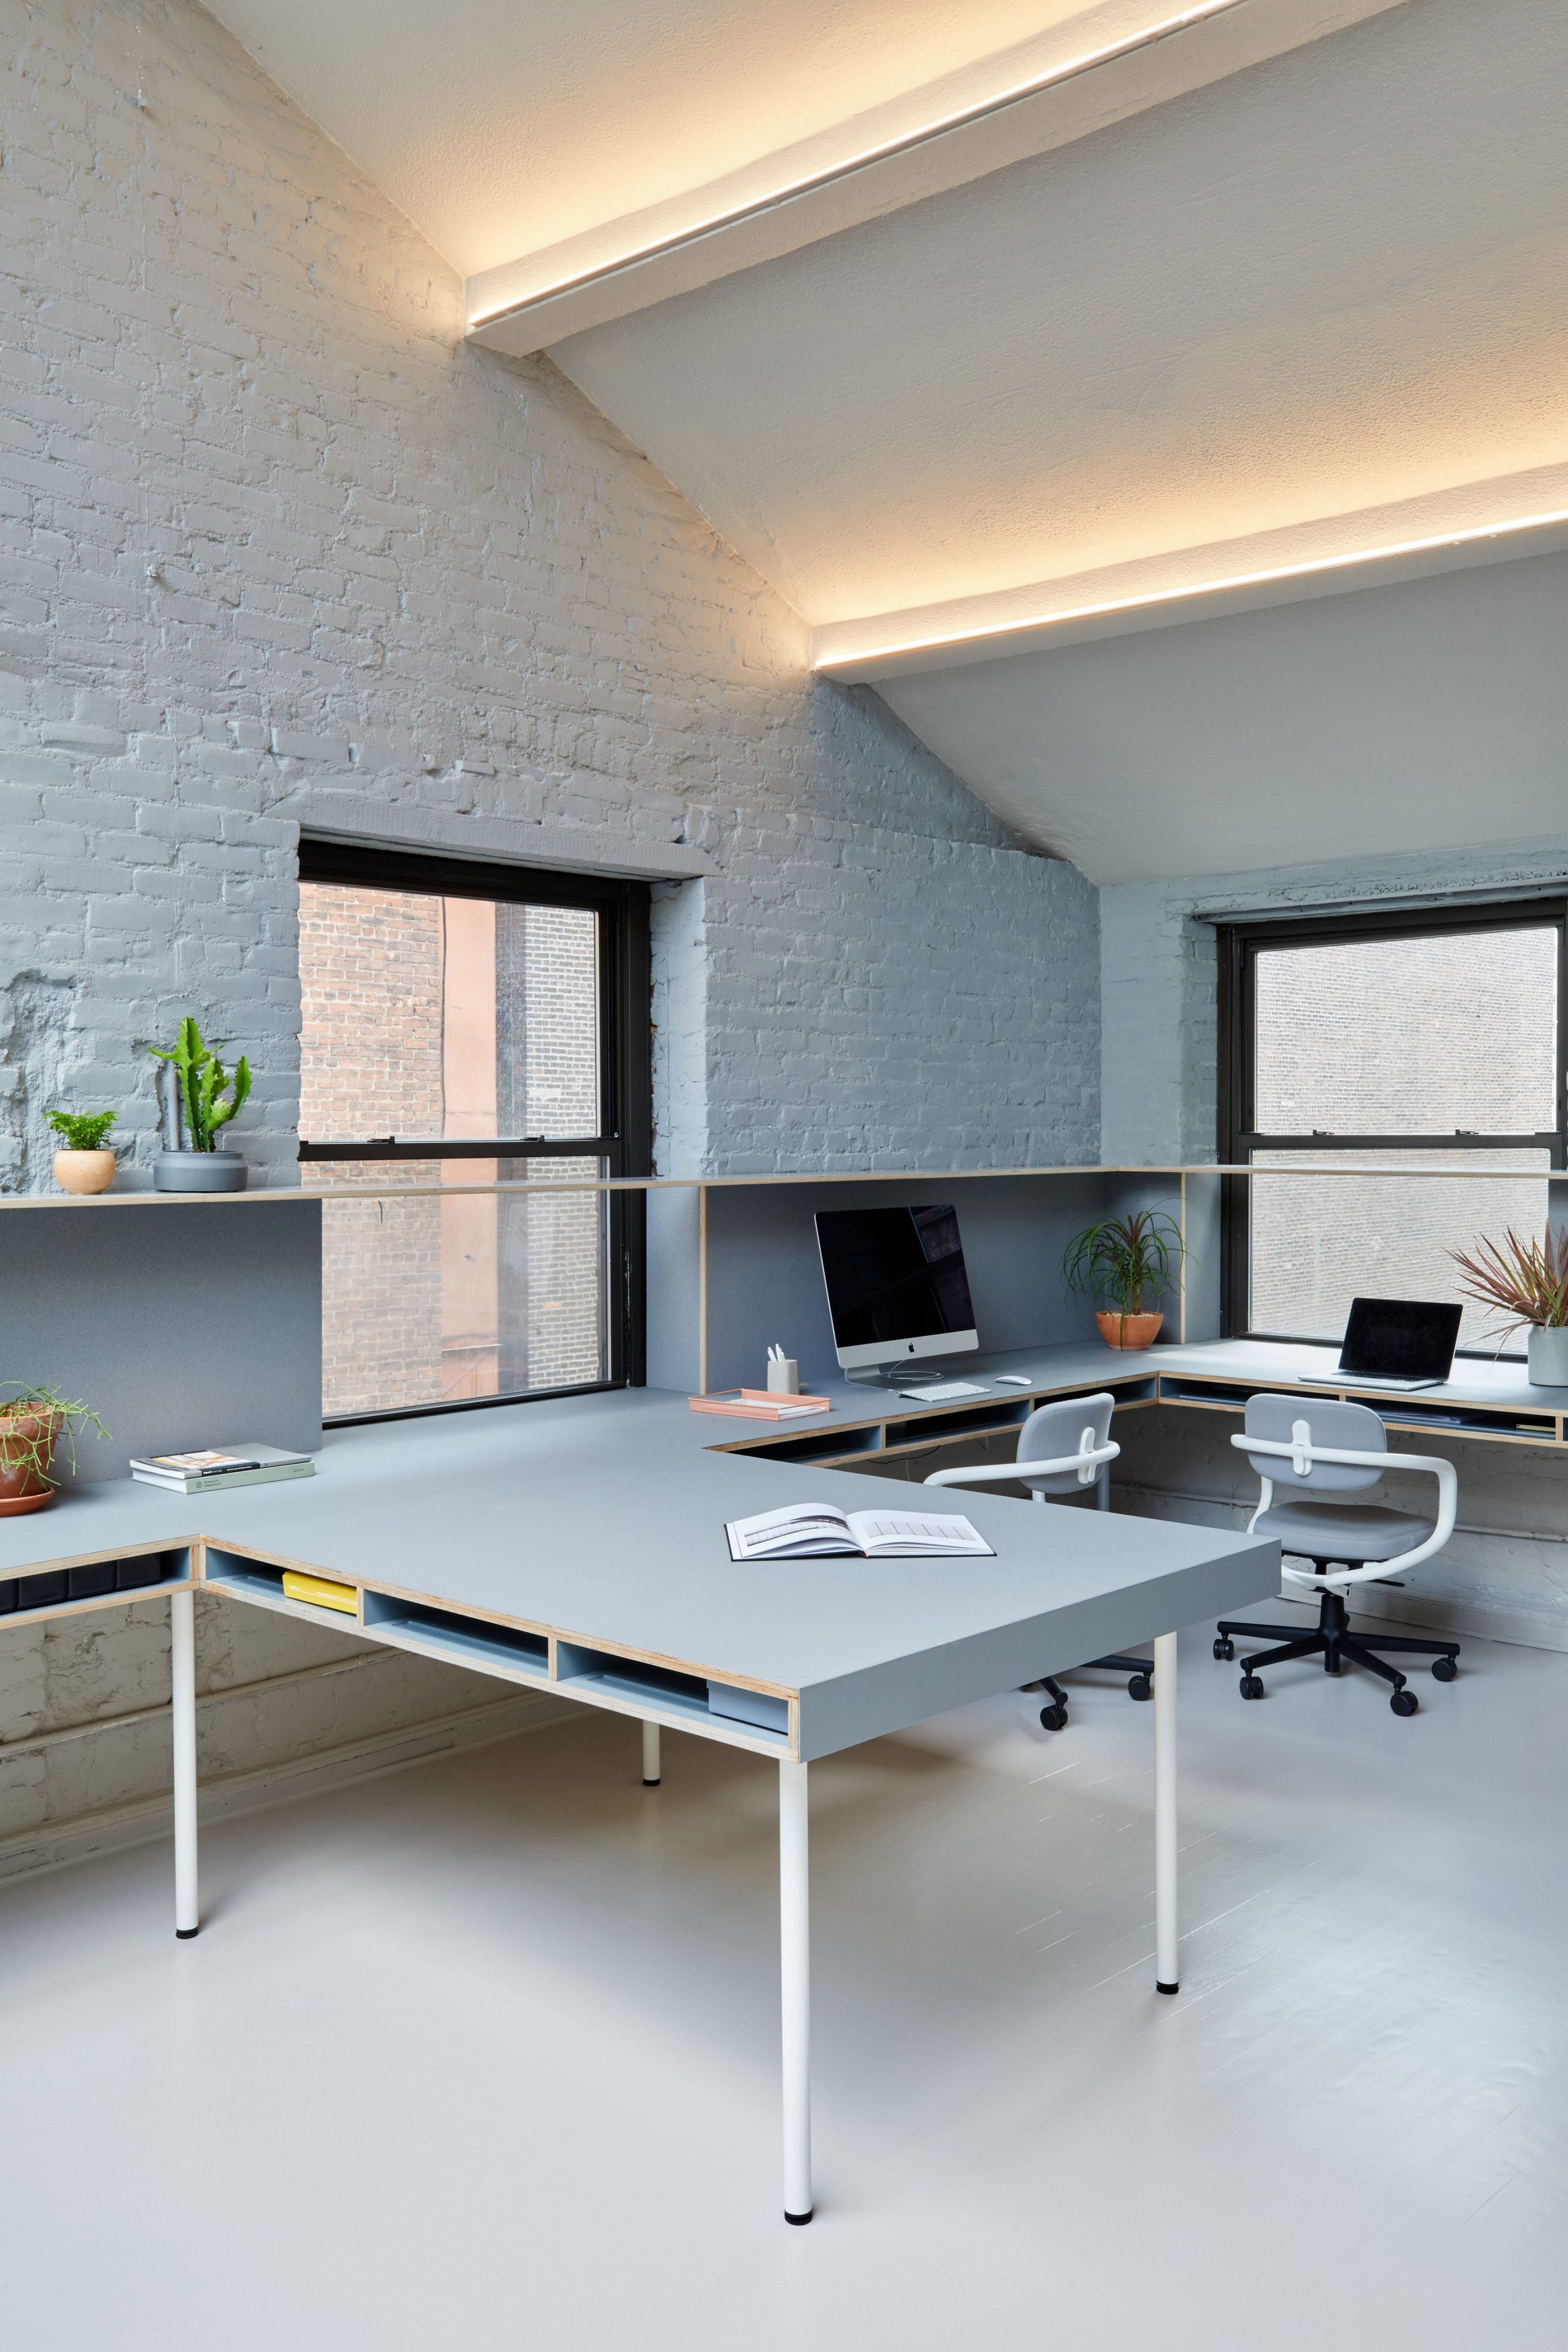 Objective Subject Offices by GRT Architects